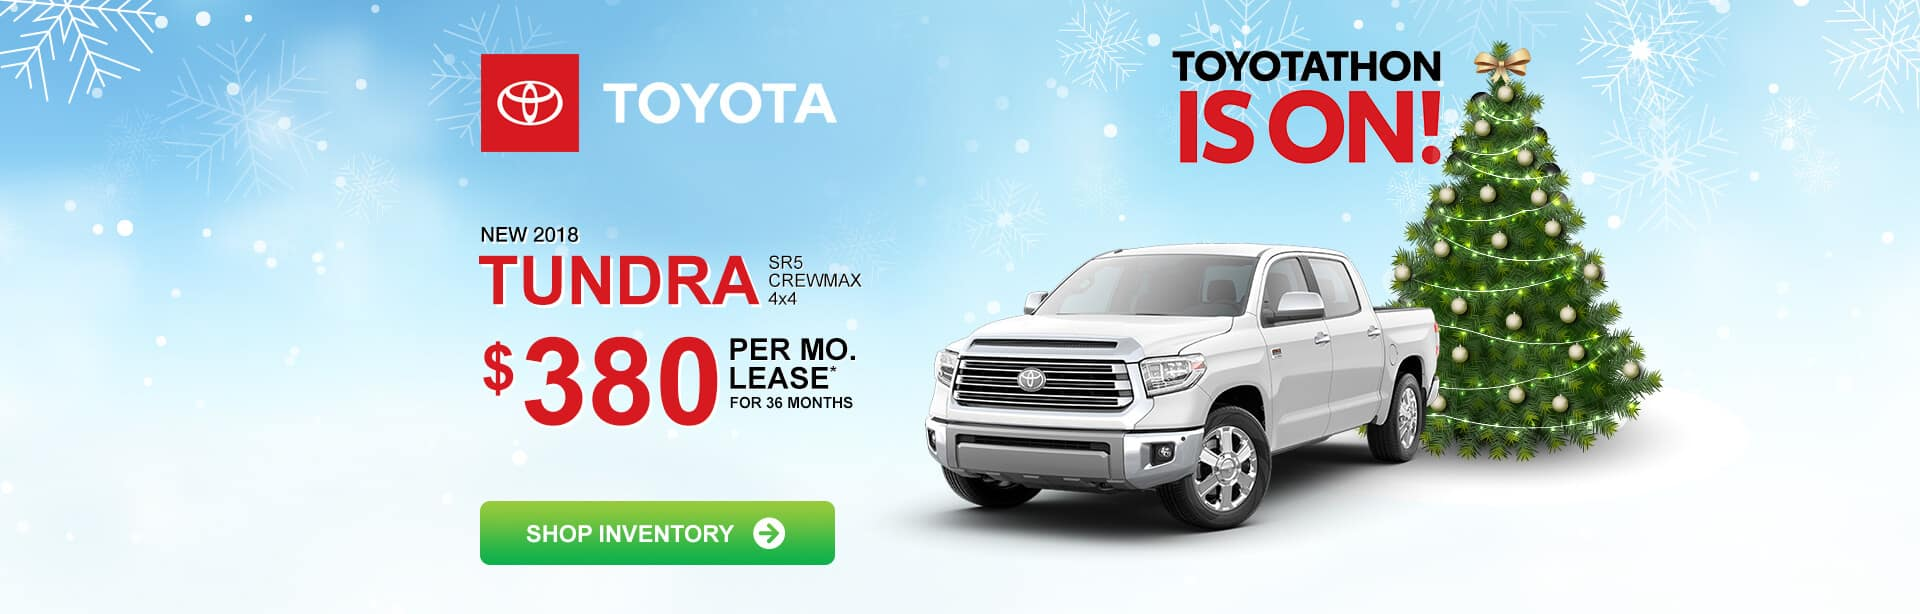 2018 Toyota Tundra Best Deal Near Indianapolis during Toyotathon.